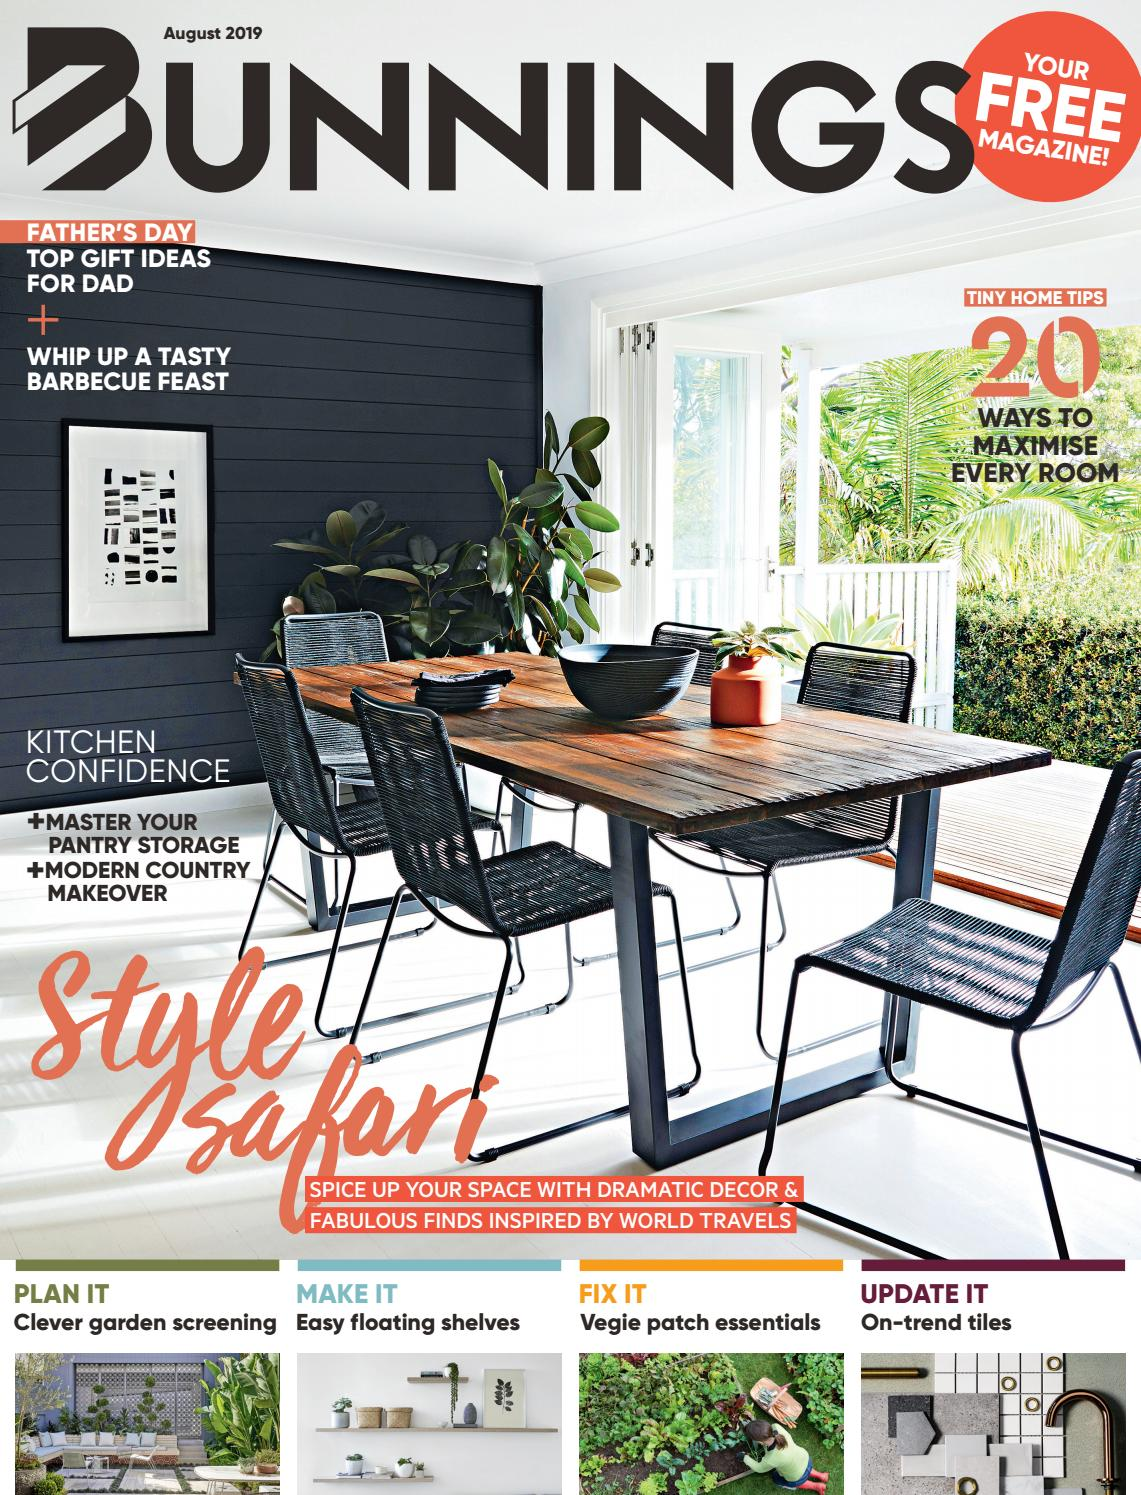 Bunnings Magazine August 2019 By Bunnings Issuu